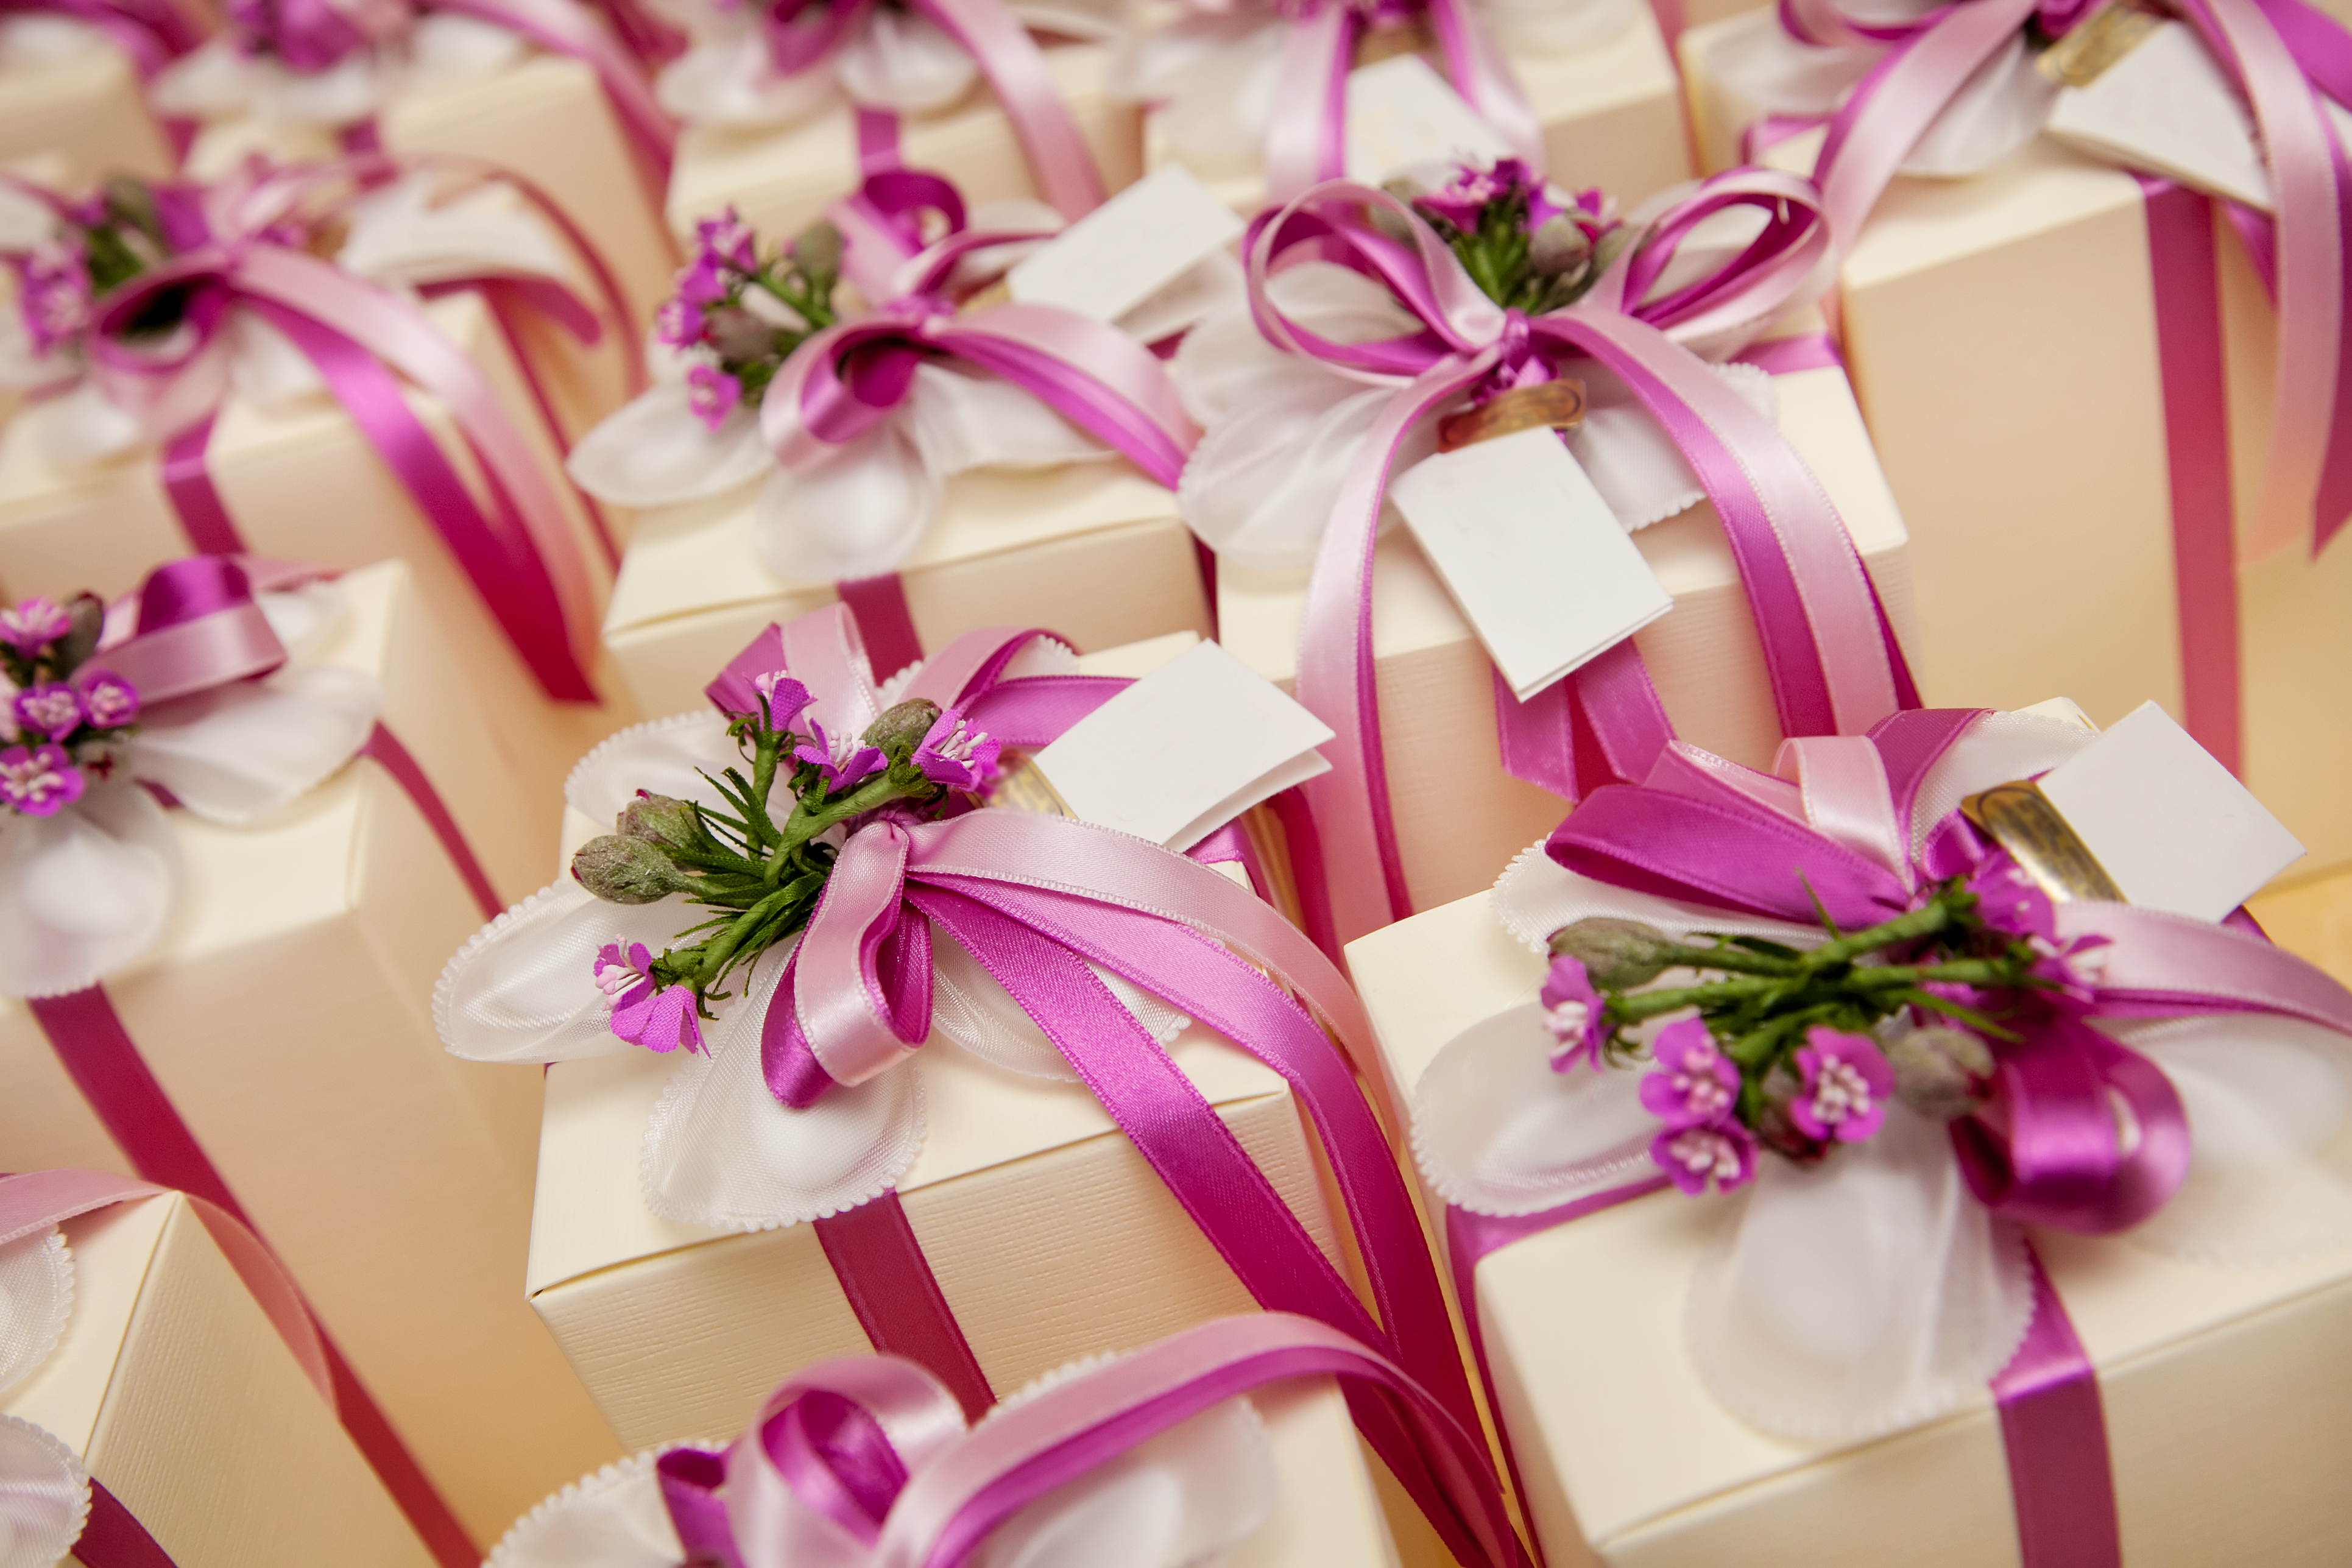 Wedding Gifts  What NOT to gift  WEDDING BLOG